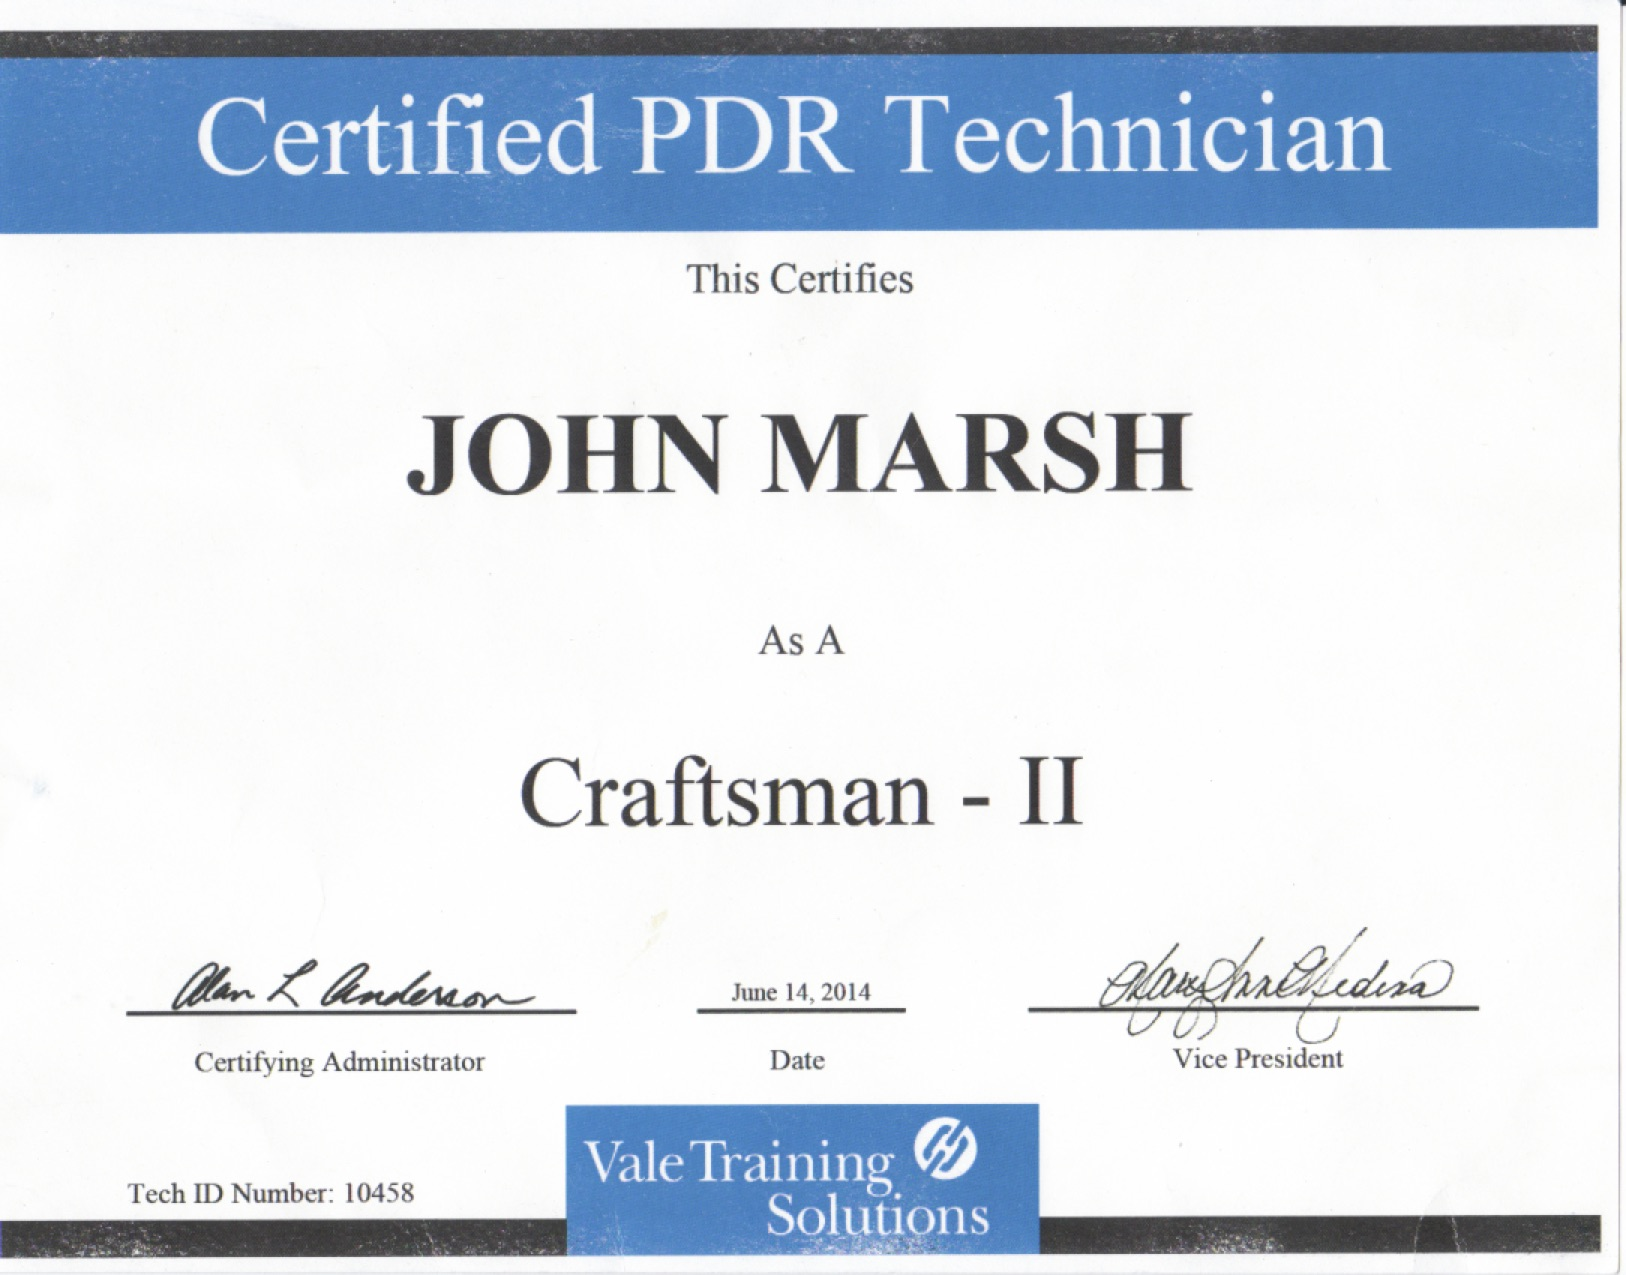 John Marsh Certified PDR Technician